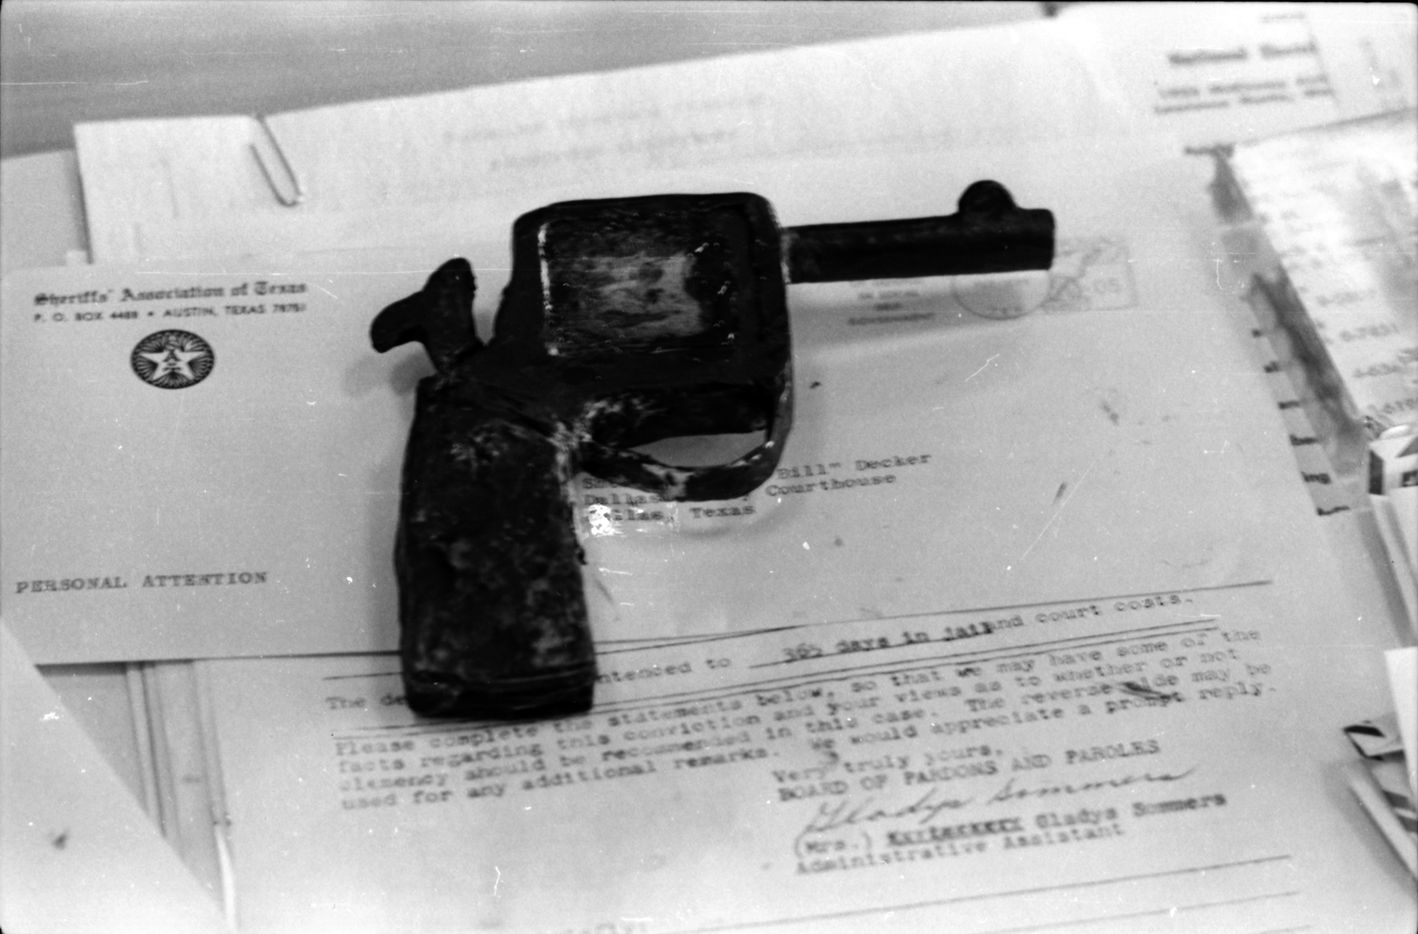 March 7, 1964 - Gun made of soap used in the jail break during the Jack Ruby trial.